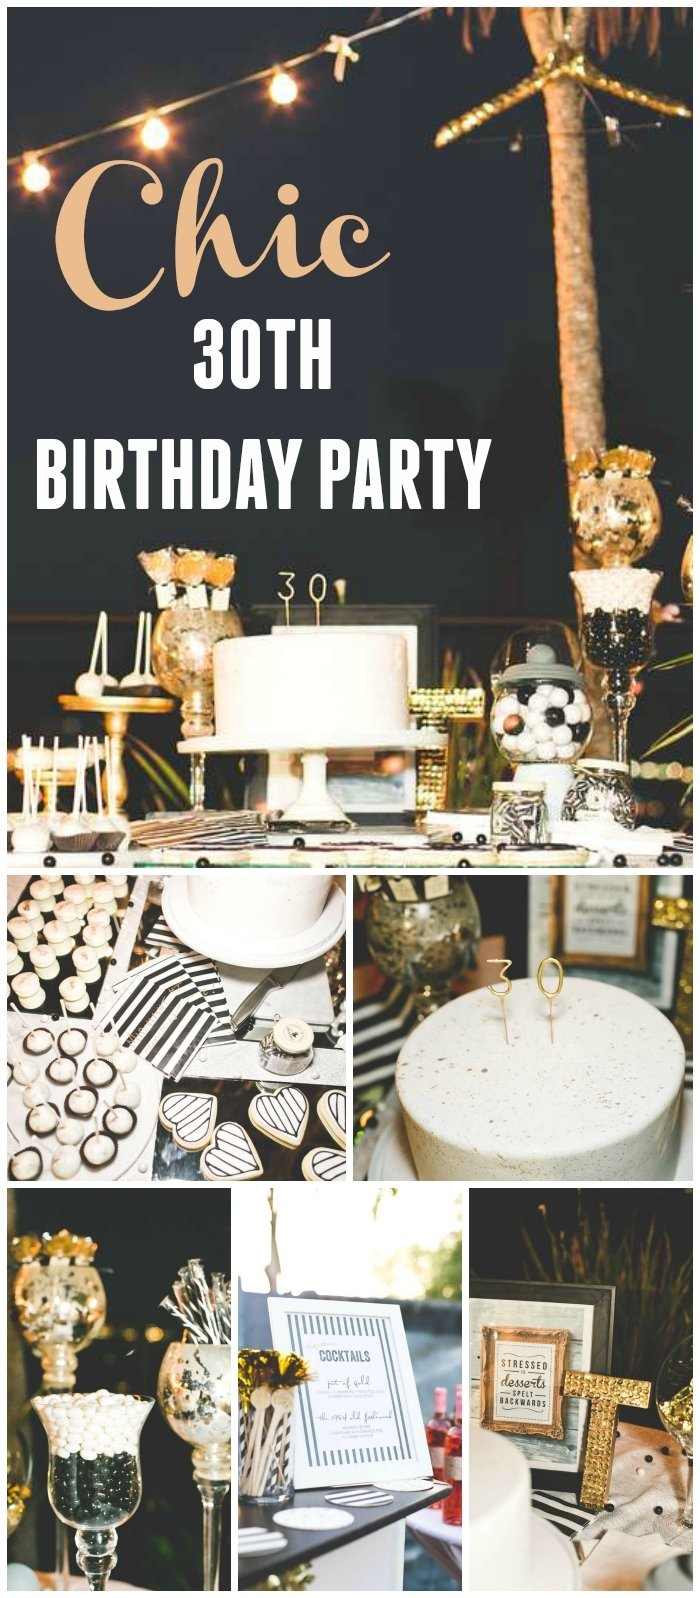 10 Most Recommended Adult Birthday Party Theme Ideas stripes glitter birthday chic black white gold 30th birthday 3 2021